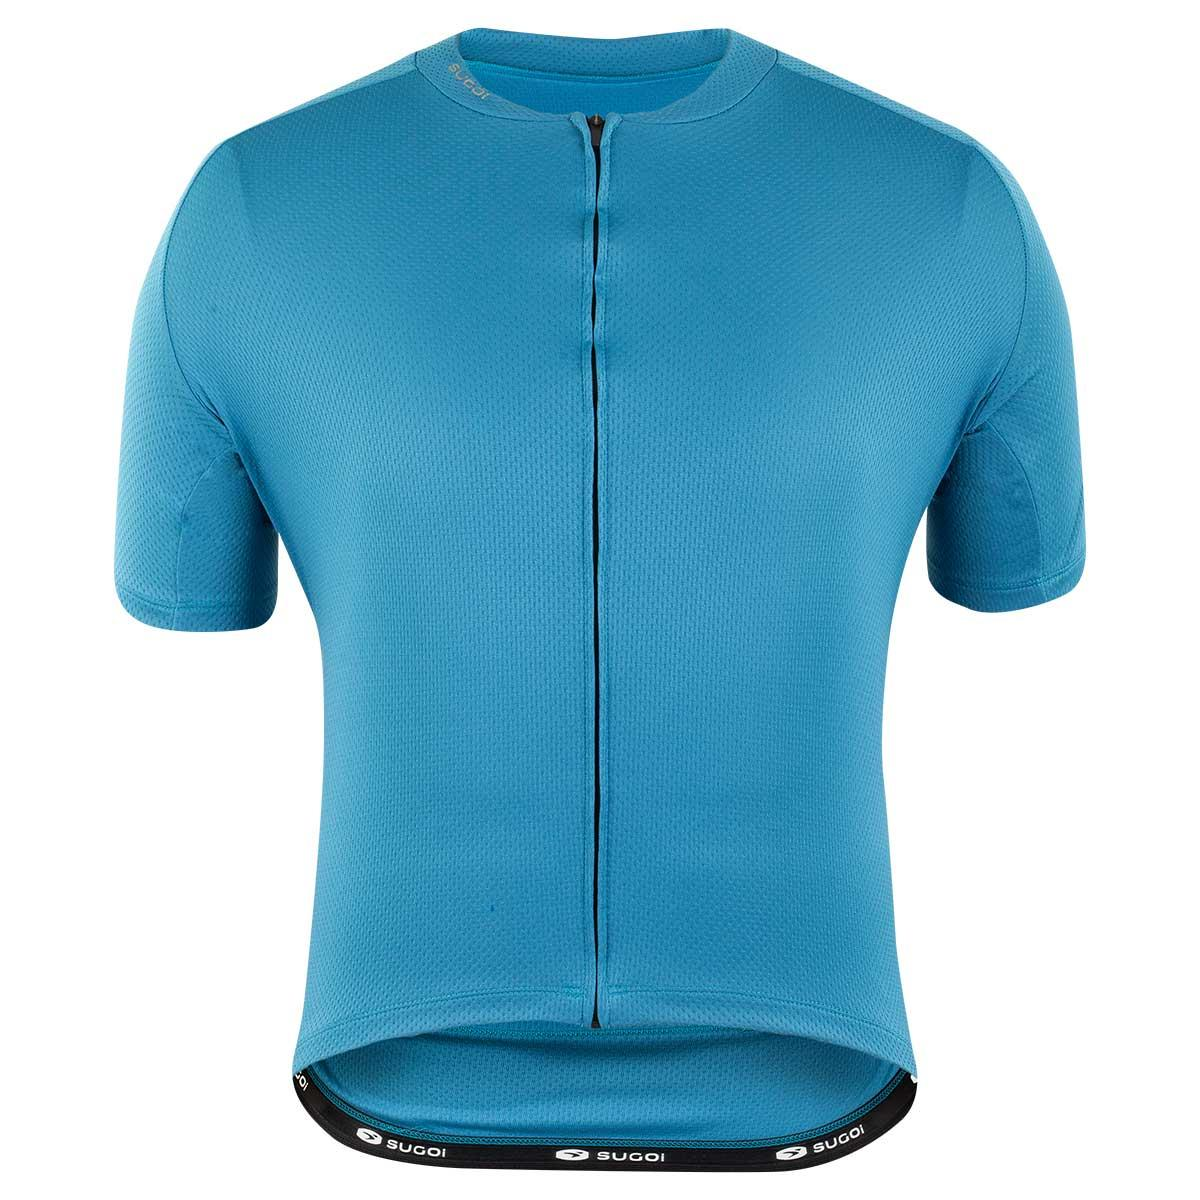 Sugoi men's Essence Jersey in Azure